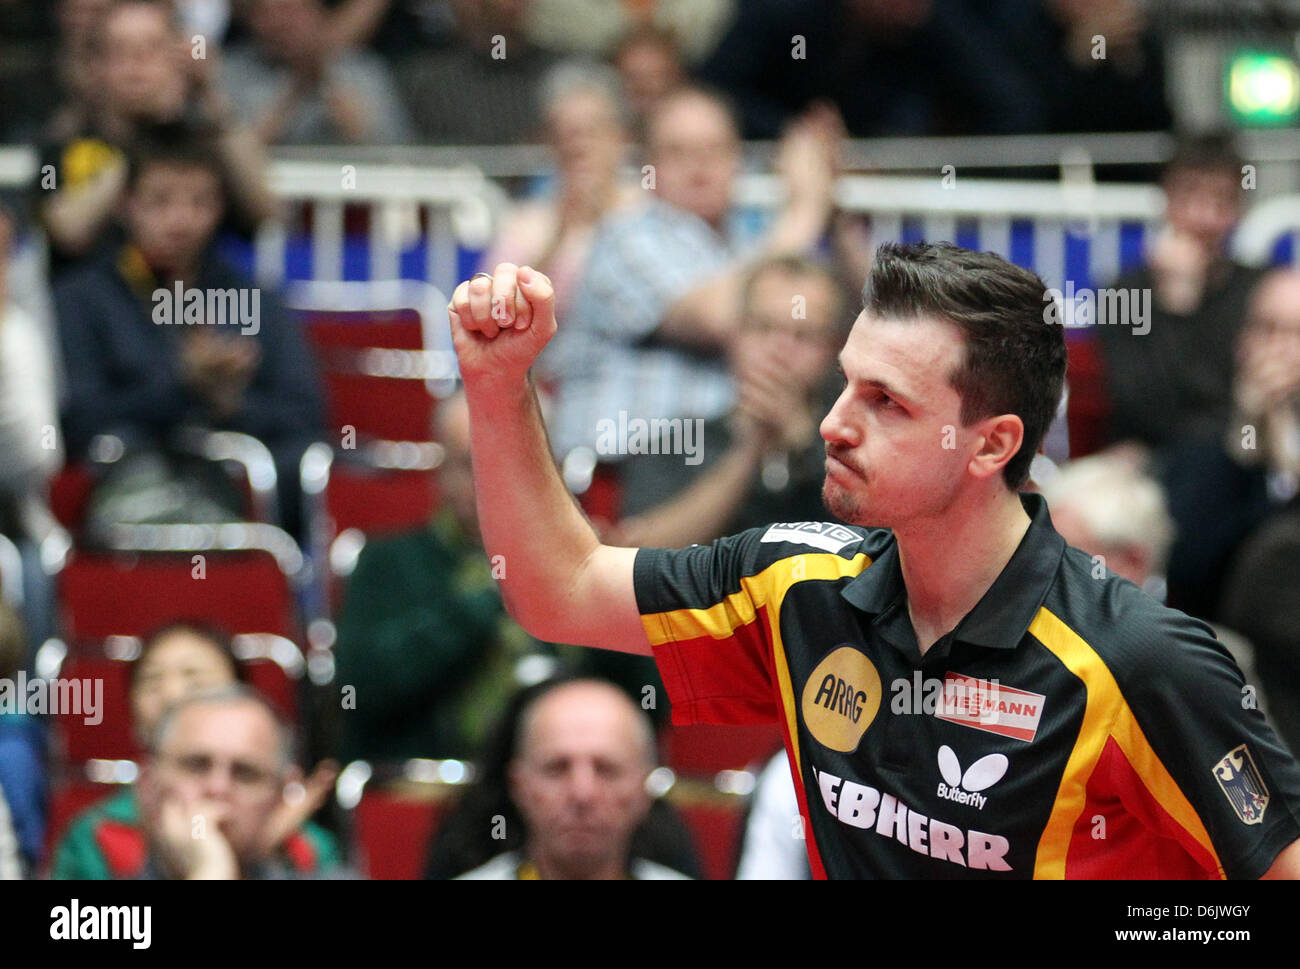 Germany's Timo Boll celebrates his victory of the men's group B match against Monteiro from Portugal at - Stock Image